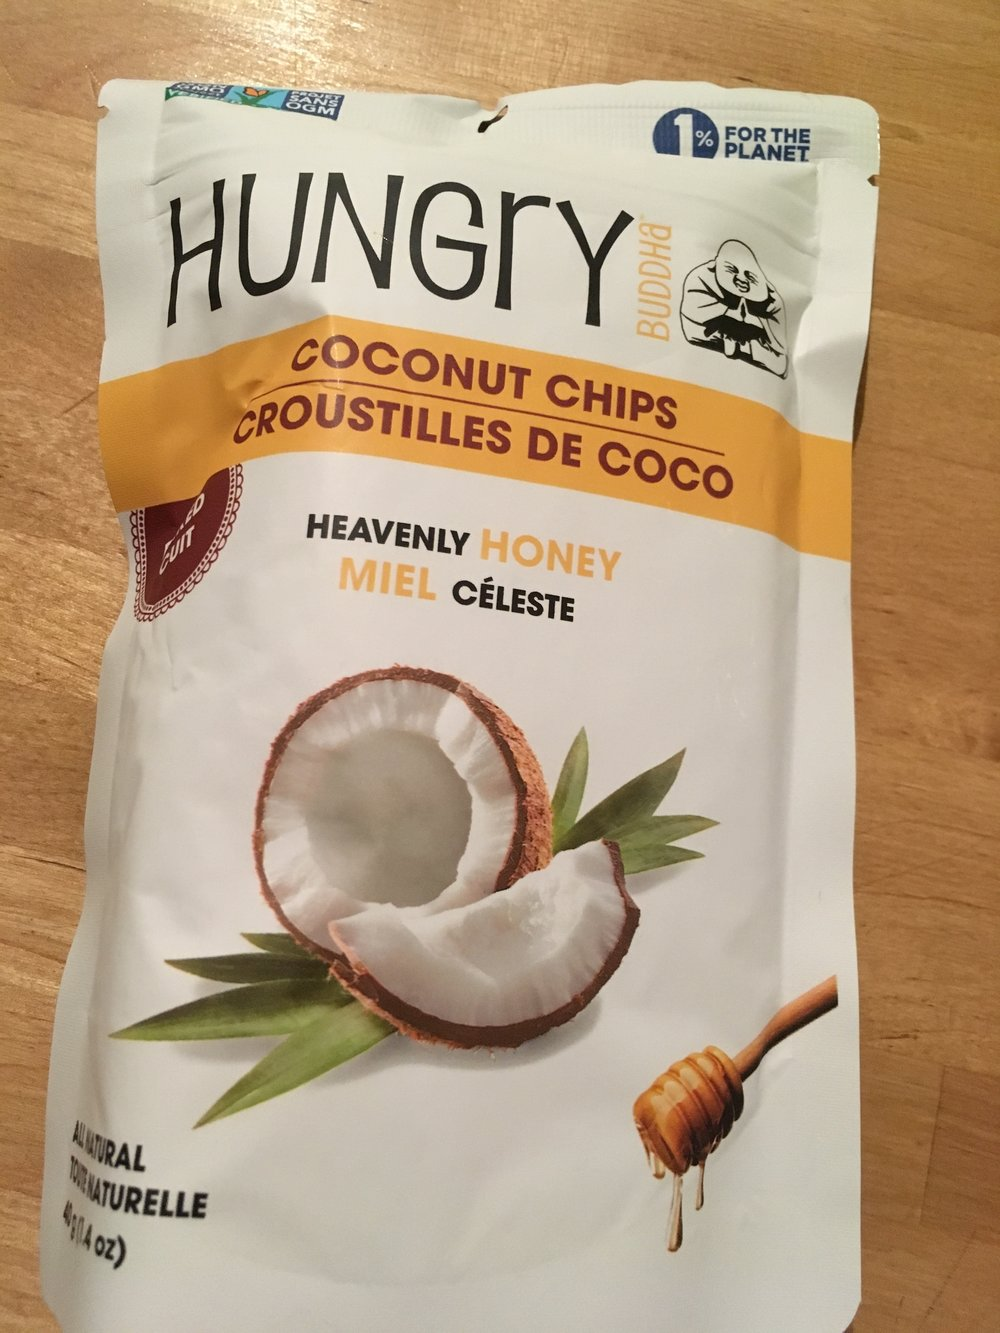 These Hungry Coconut Chips were the first food item to go. Fresh & delicious fuel. I love anything coconut. Not 1000% vegan because of the honey.